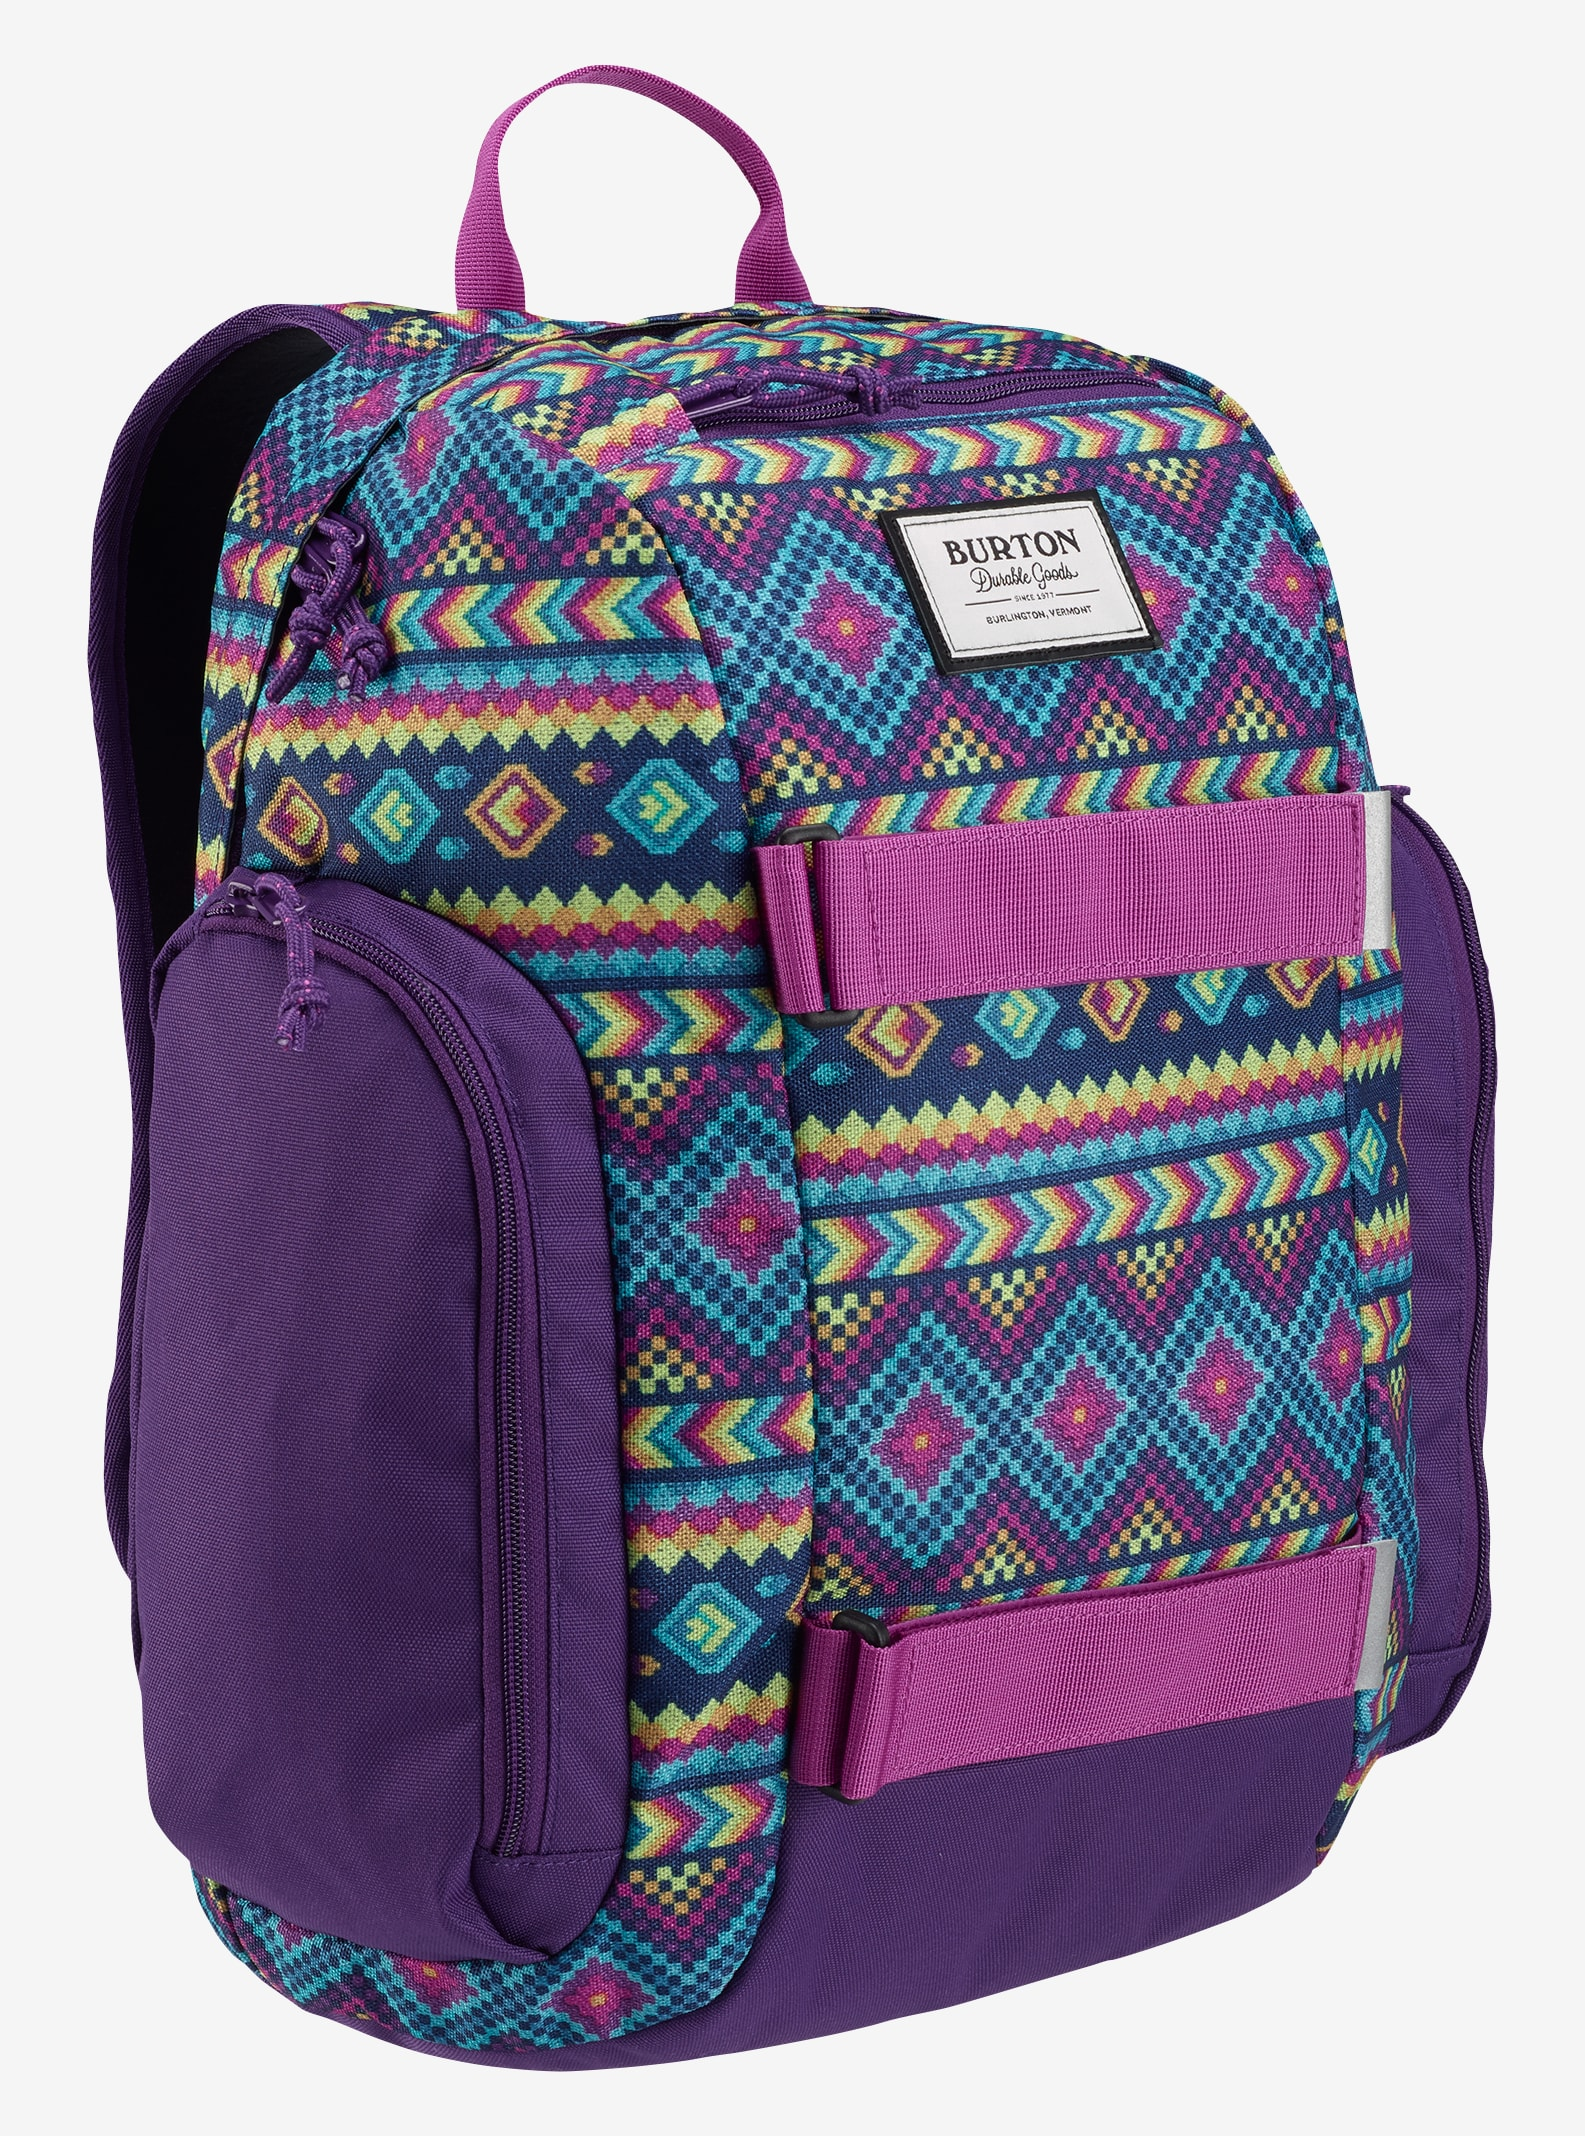 Burton Kids' Metalhead Backpack shown in Bohemia Print